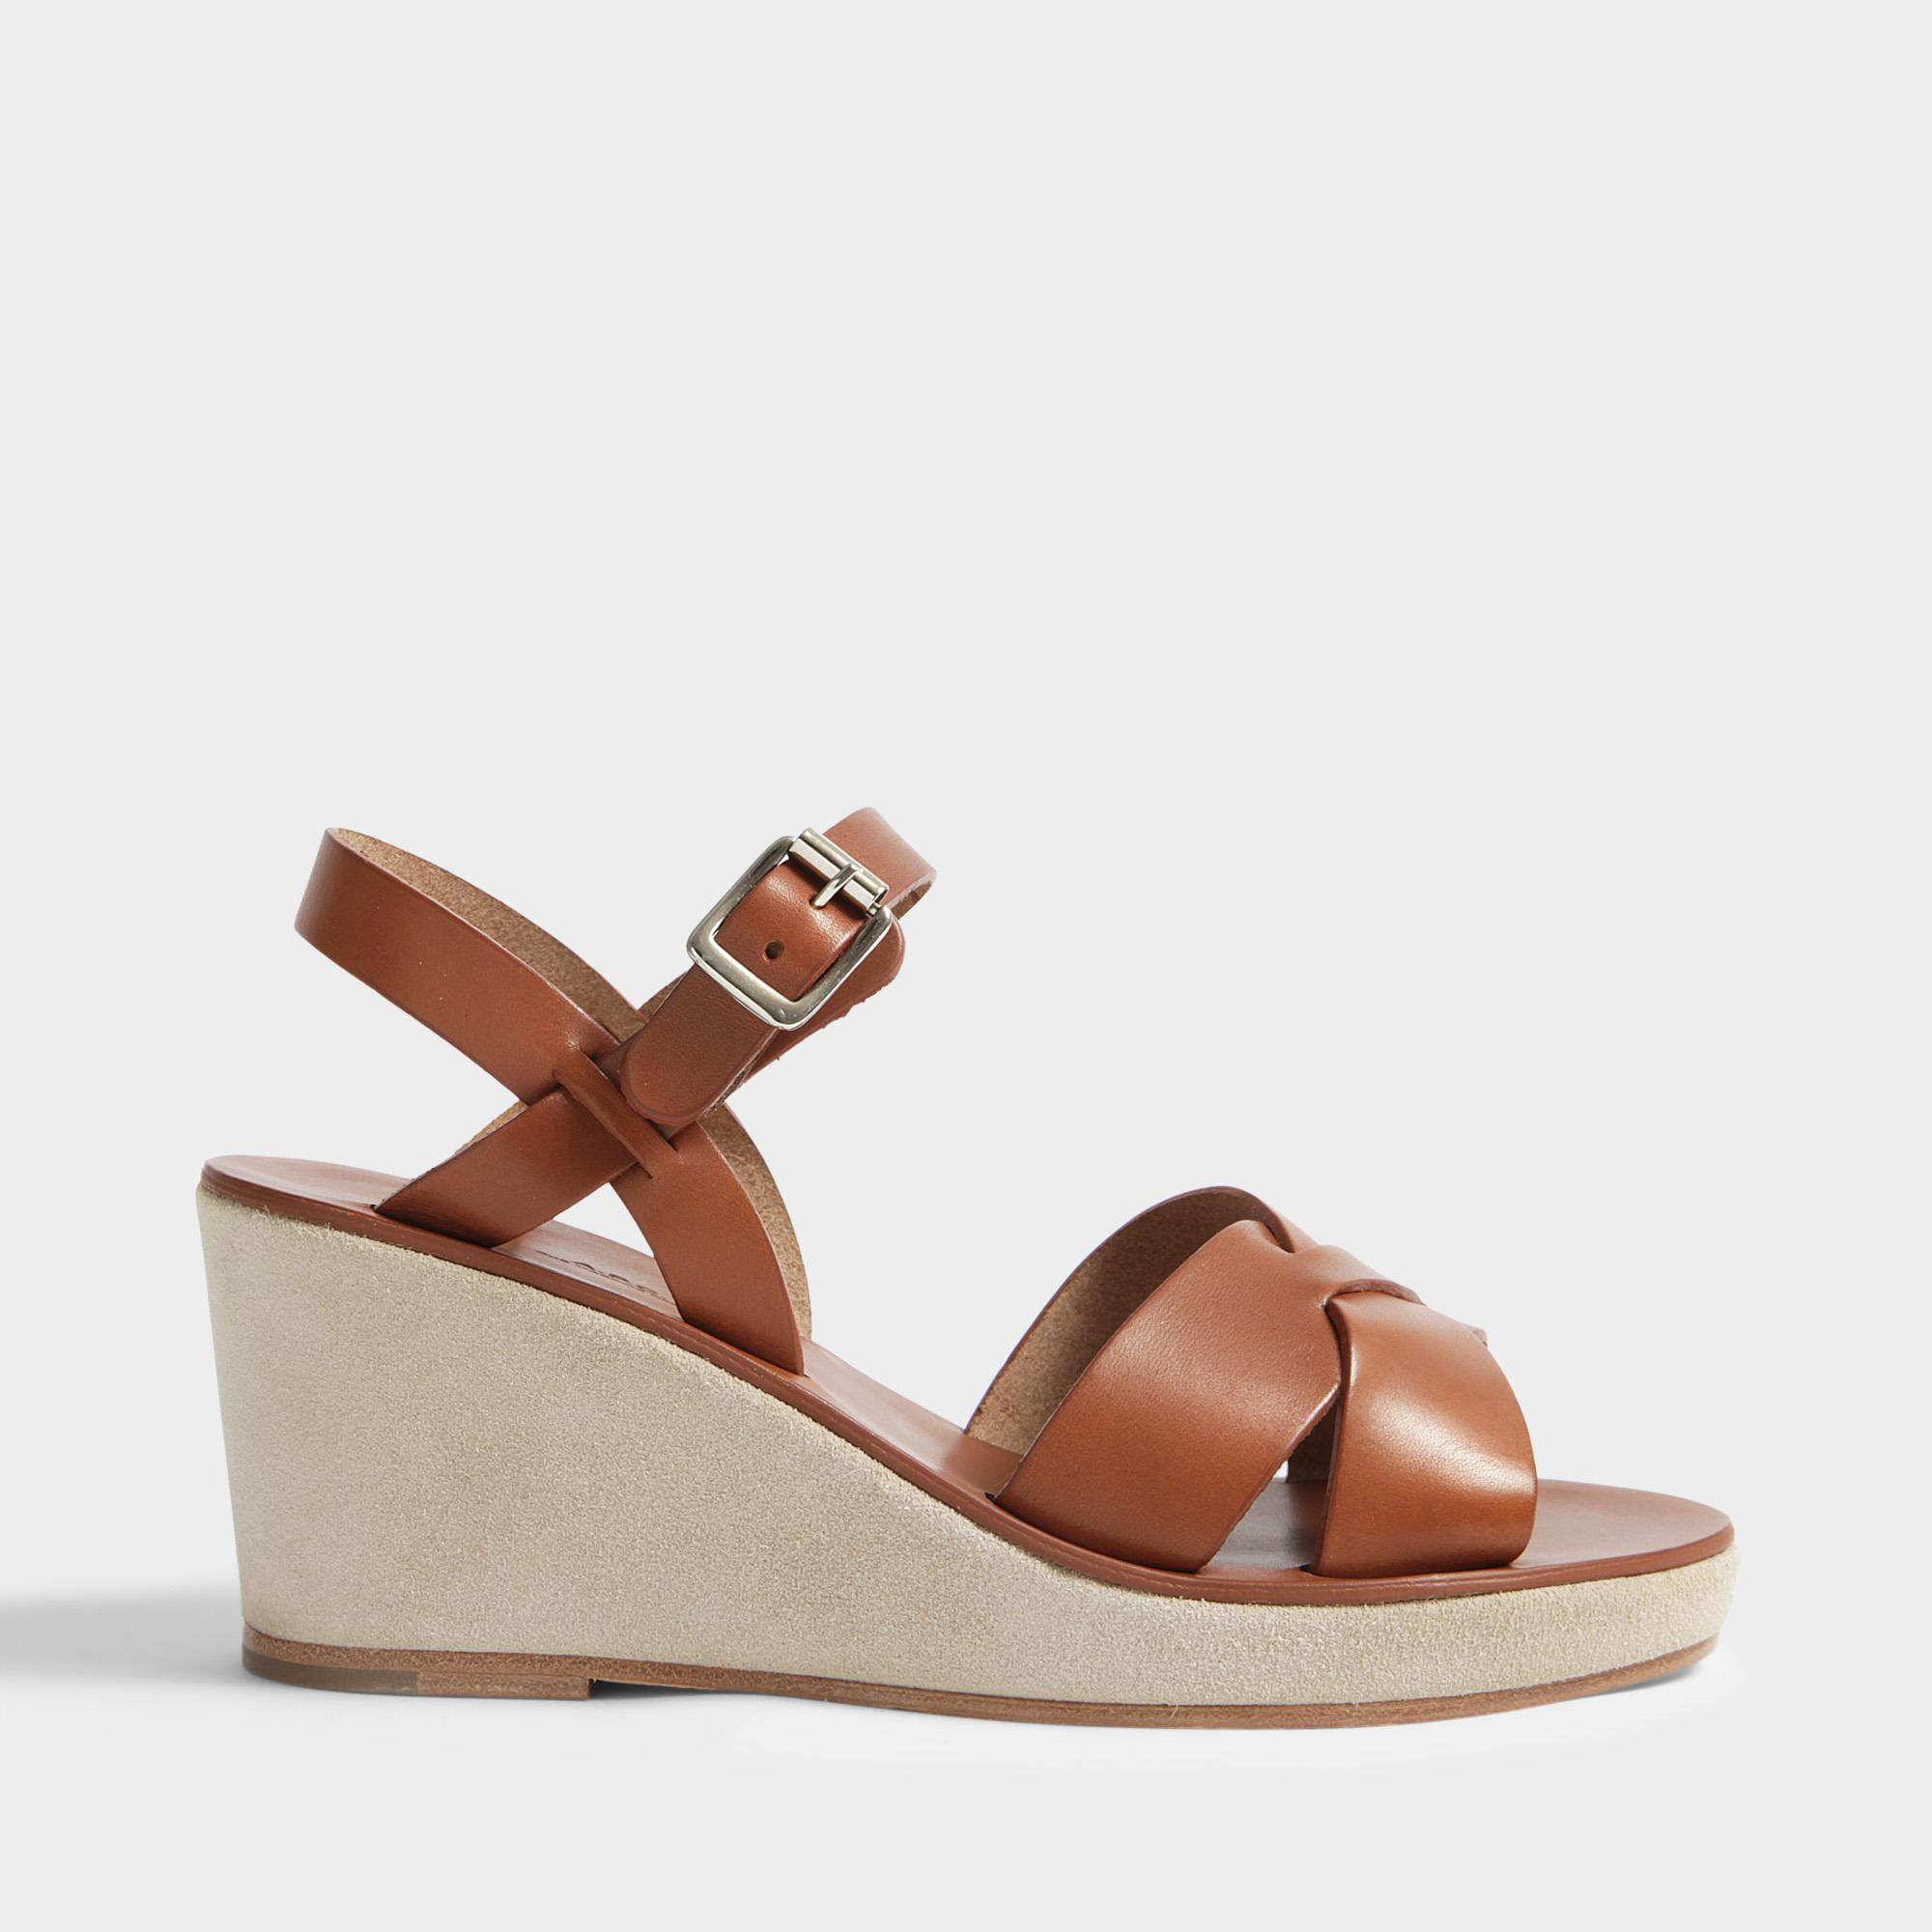 72b0a5e5820bca Lyst - A.P.C. Judith Sandals In Noisette Calfskin in Brown - Save 47%